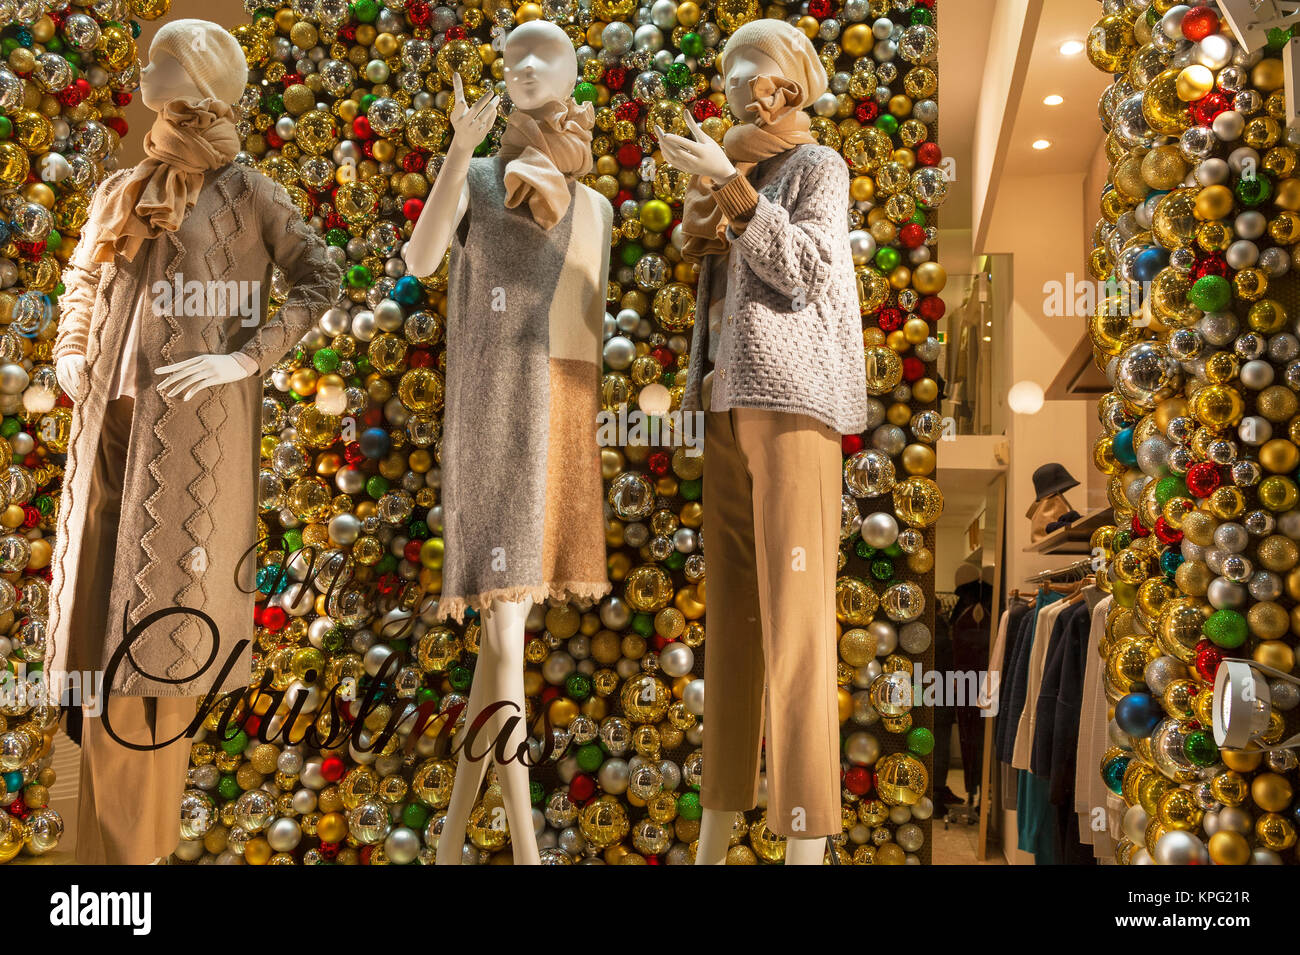 Christmas Decoration In Shop Window Stock Photos